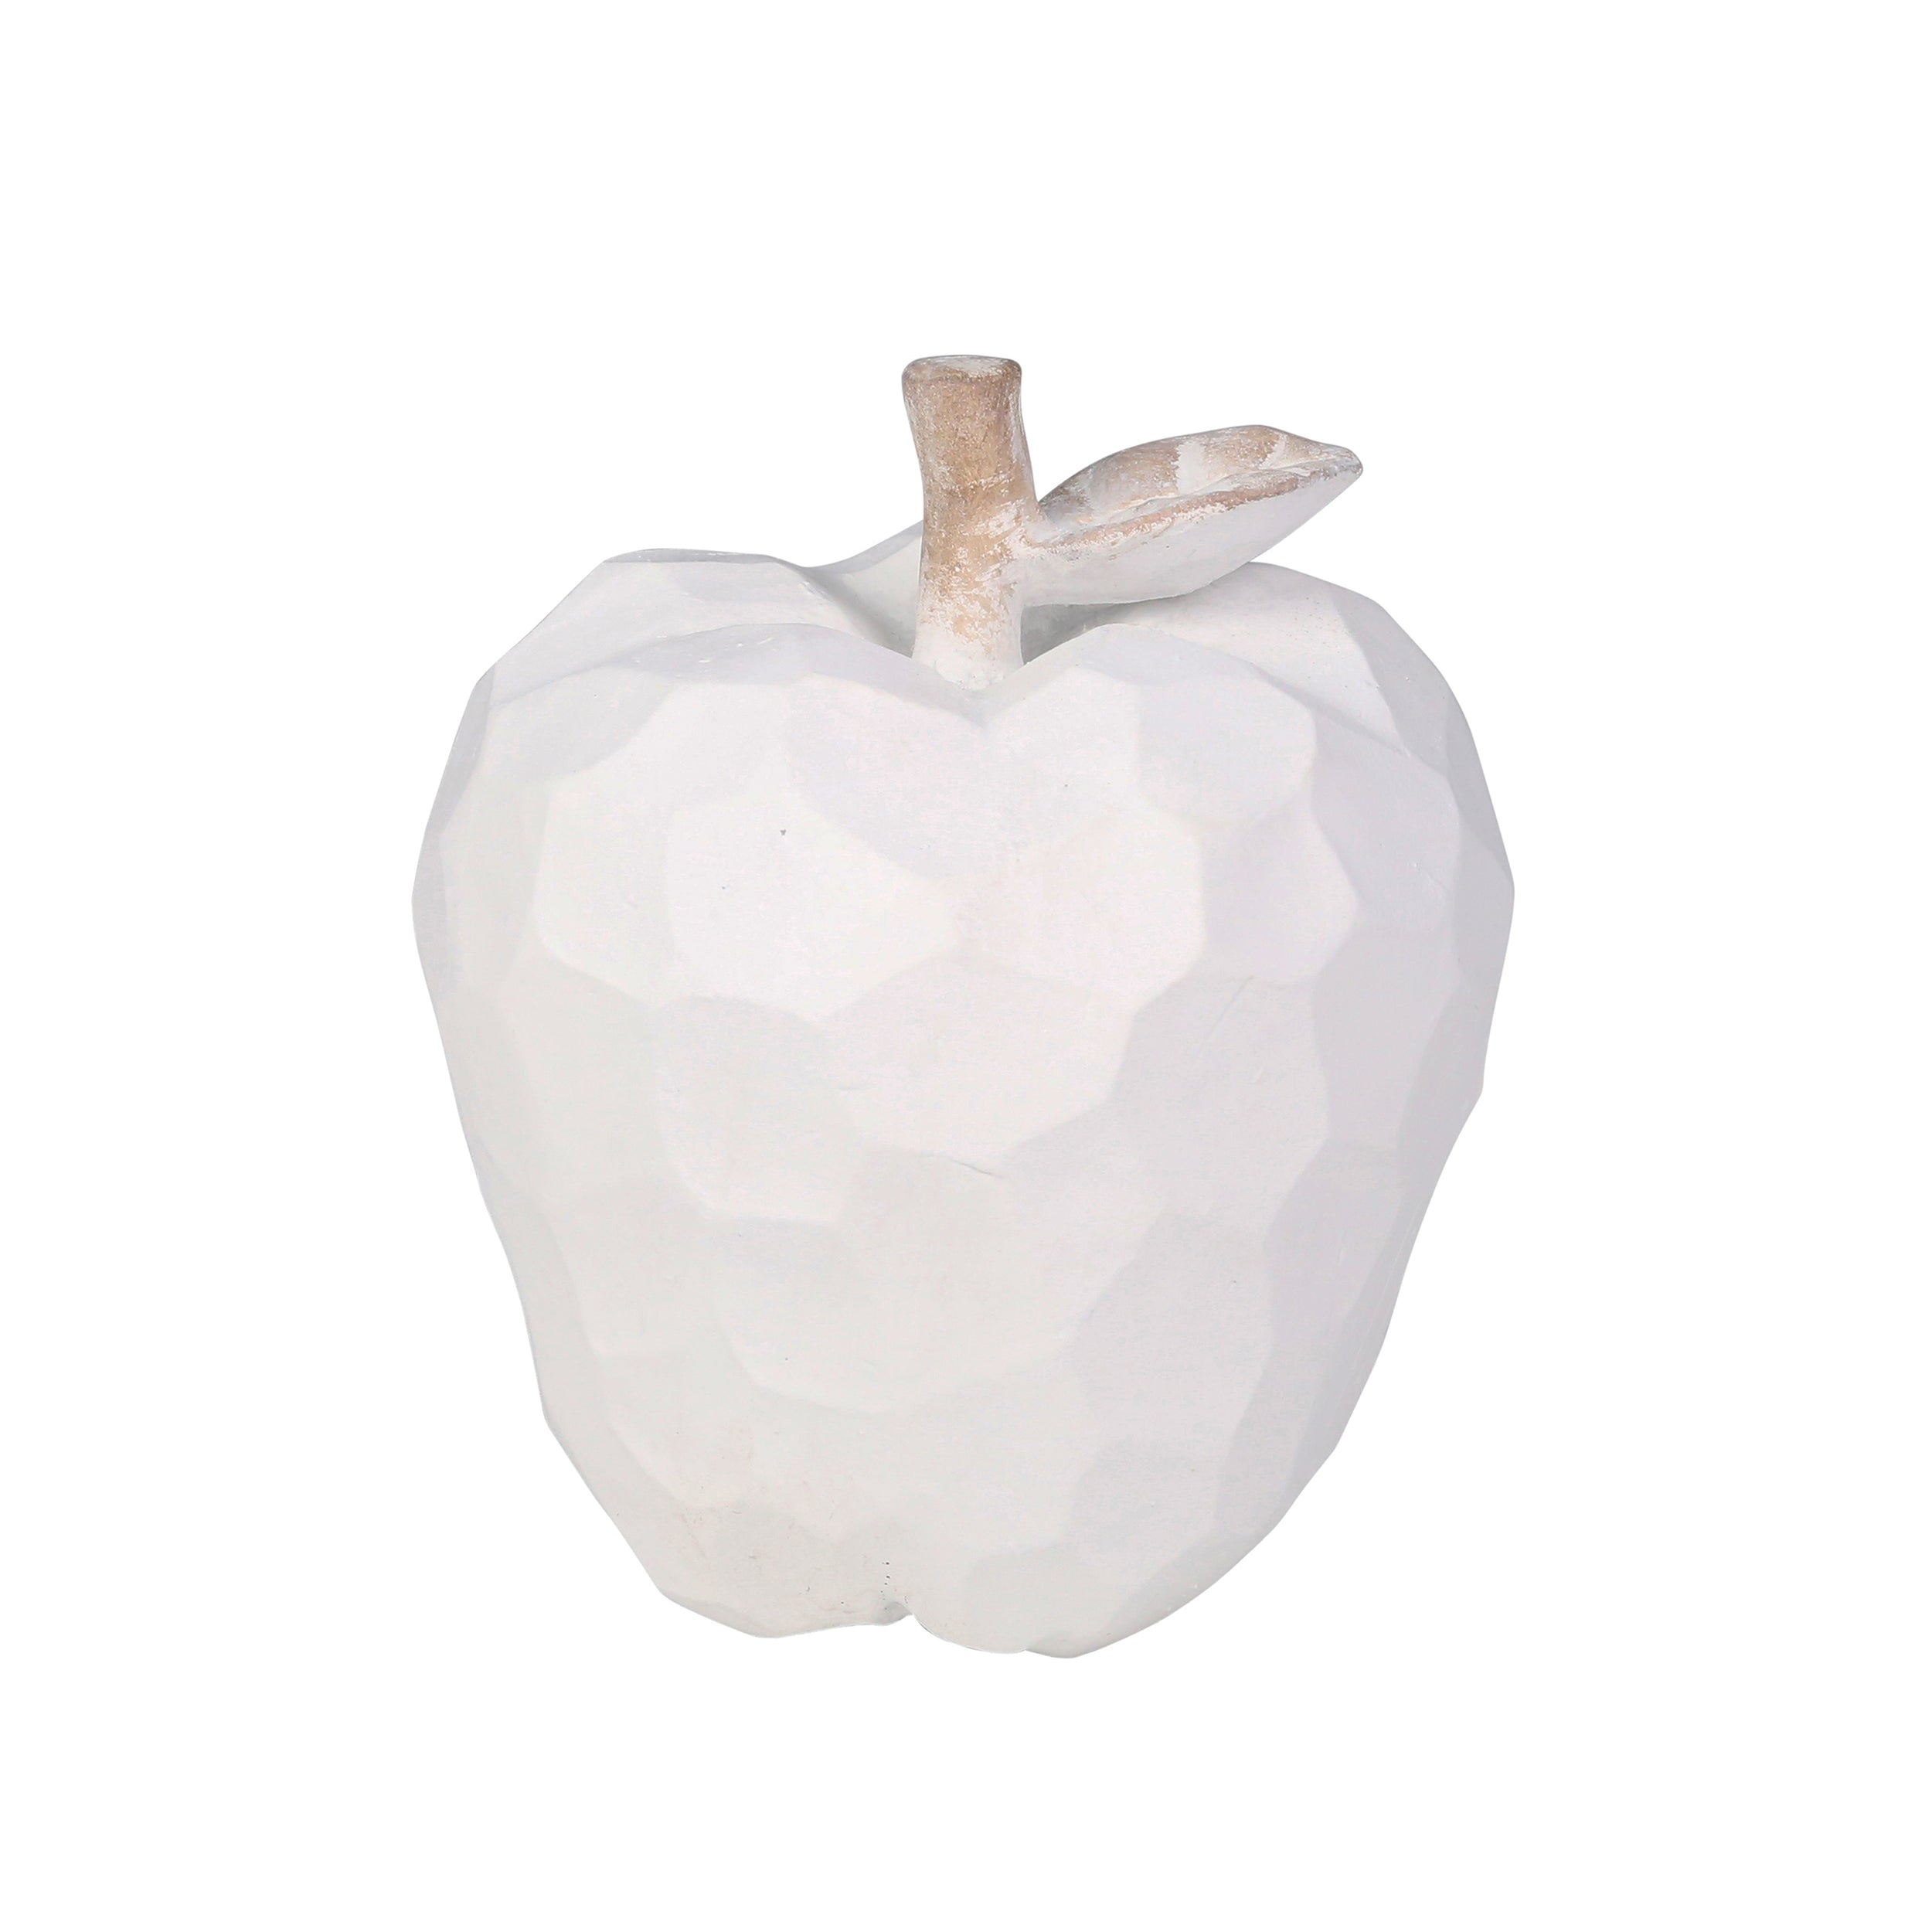 "POLYRESIN 6.75"" APPLE, WHITE - Casa Muebles"